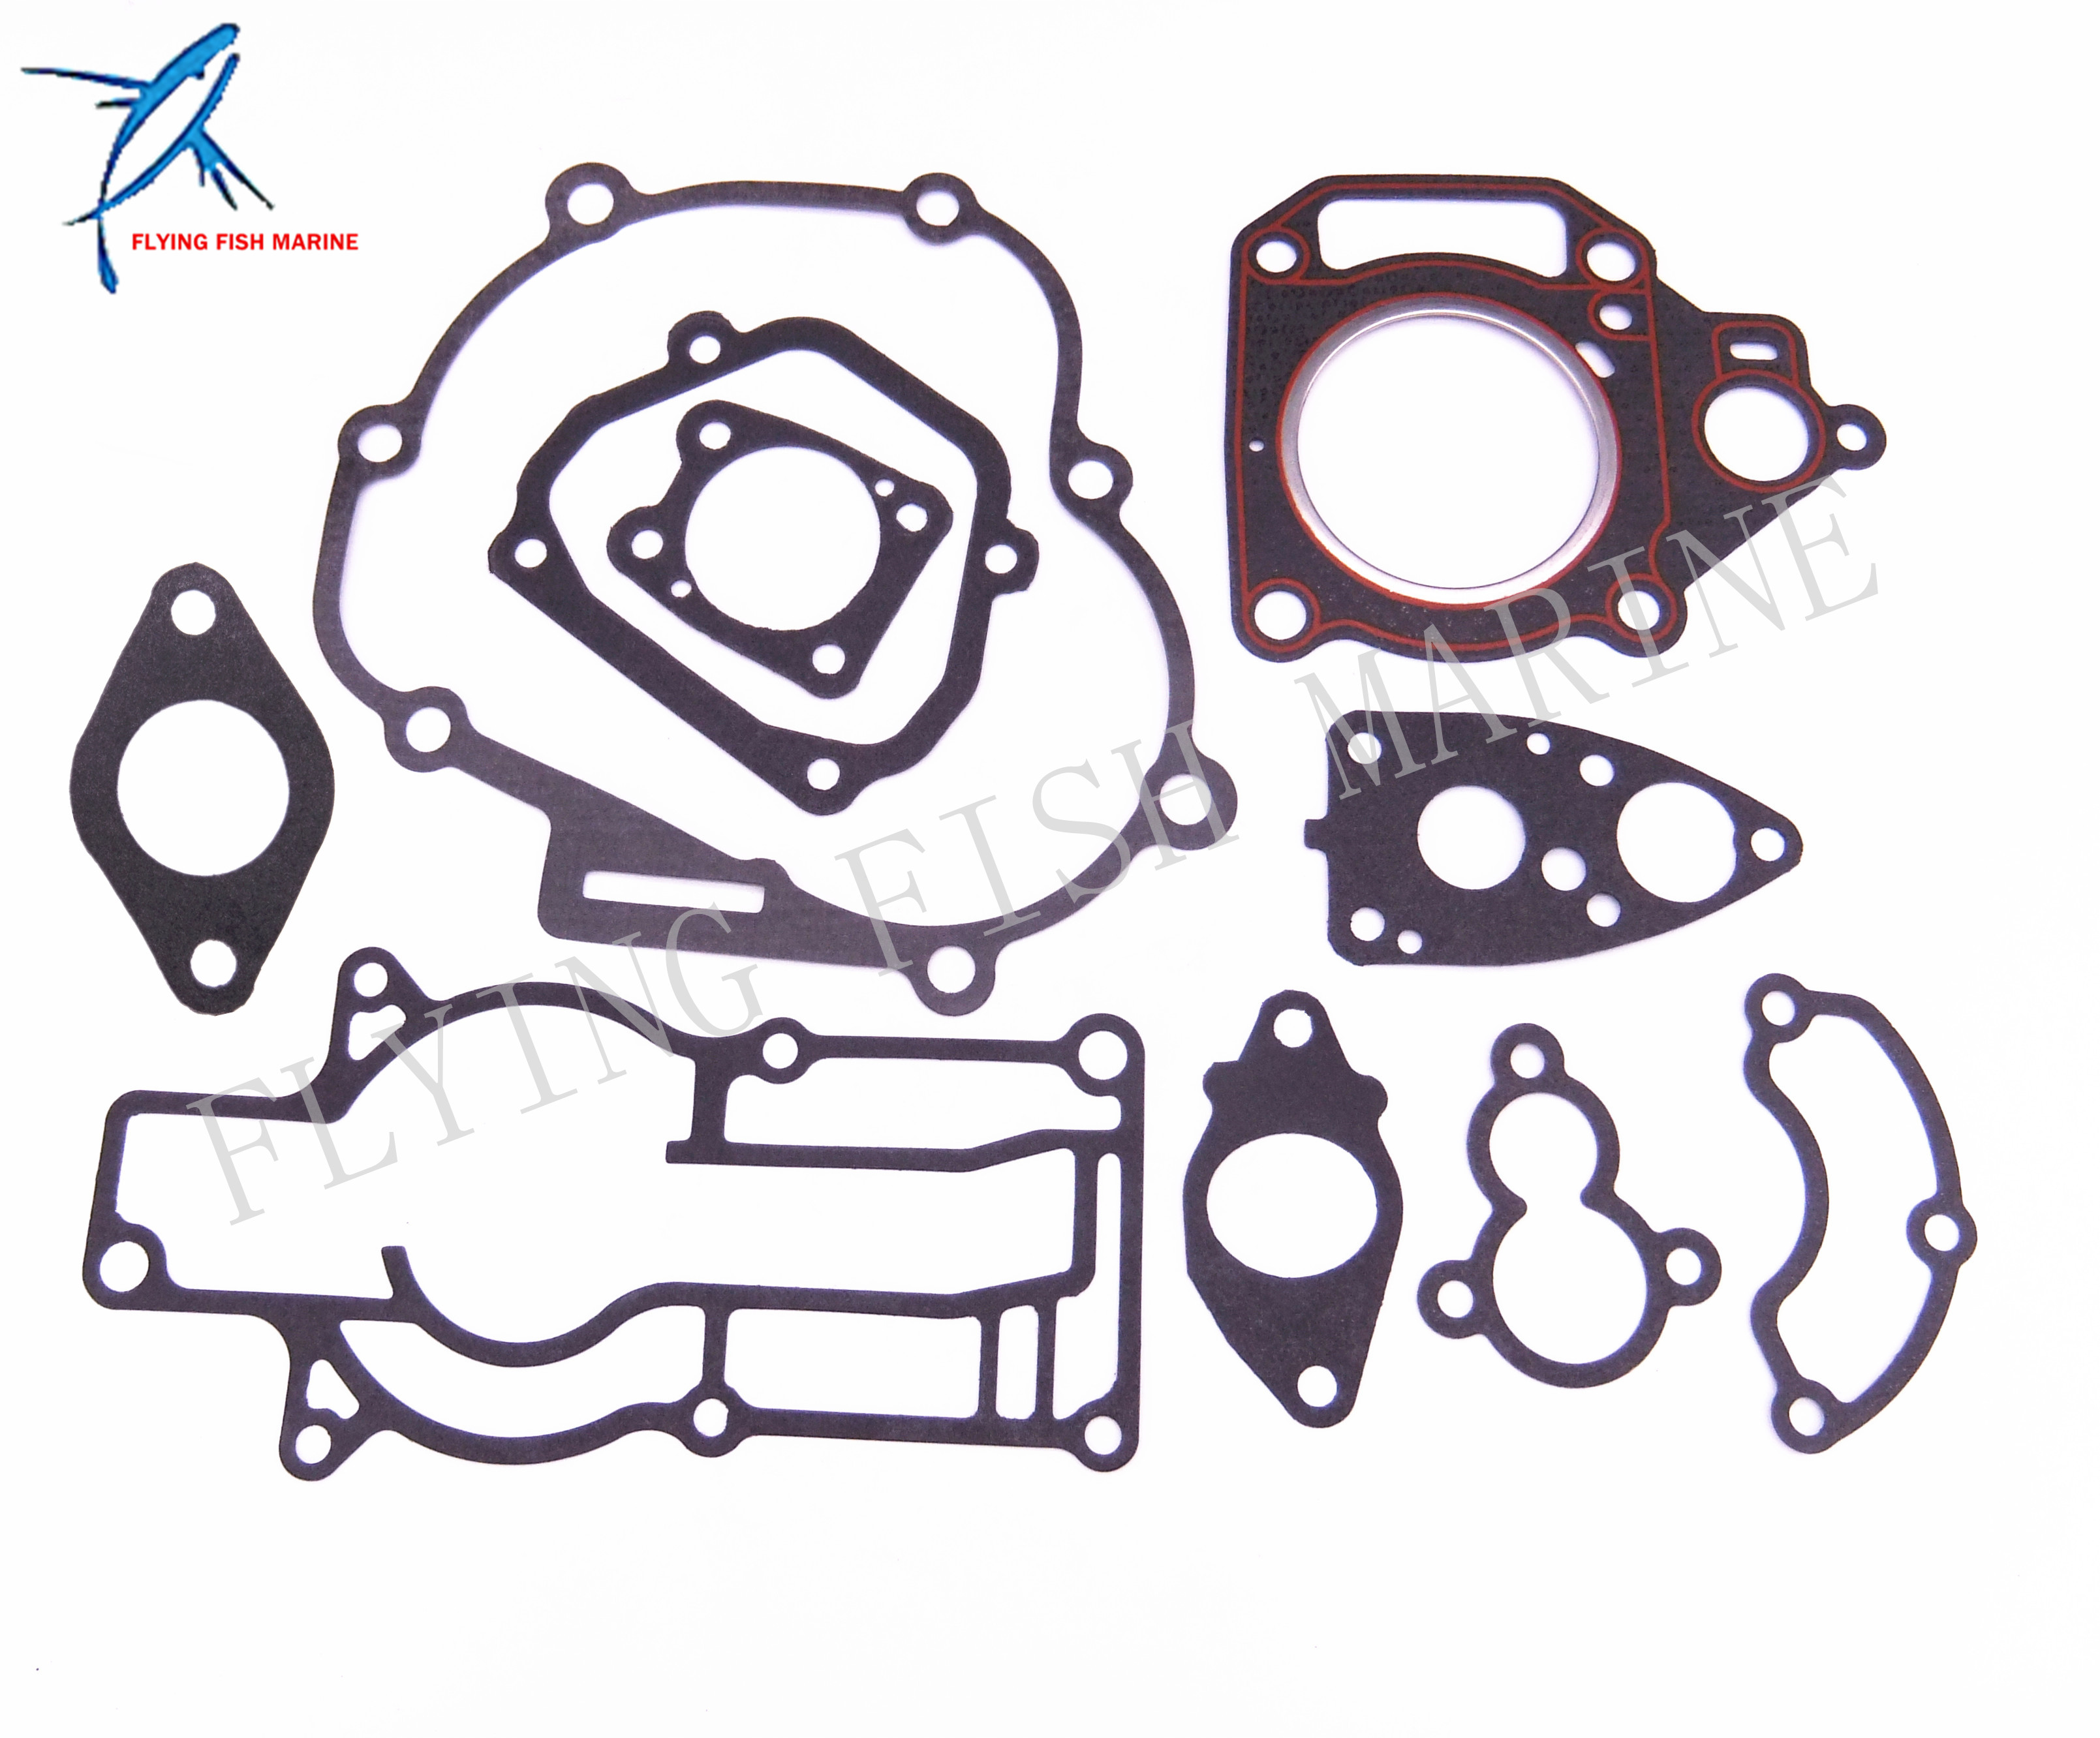 Complete Power Head Seal Gasket Kit for Yamaha F4 4HP 4 stroke Boat Outboard Motor